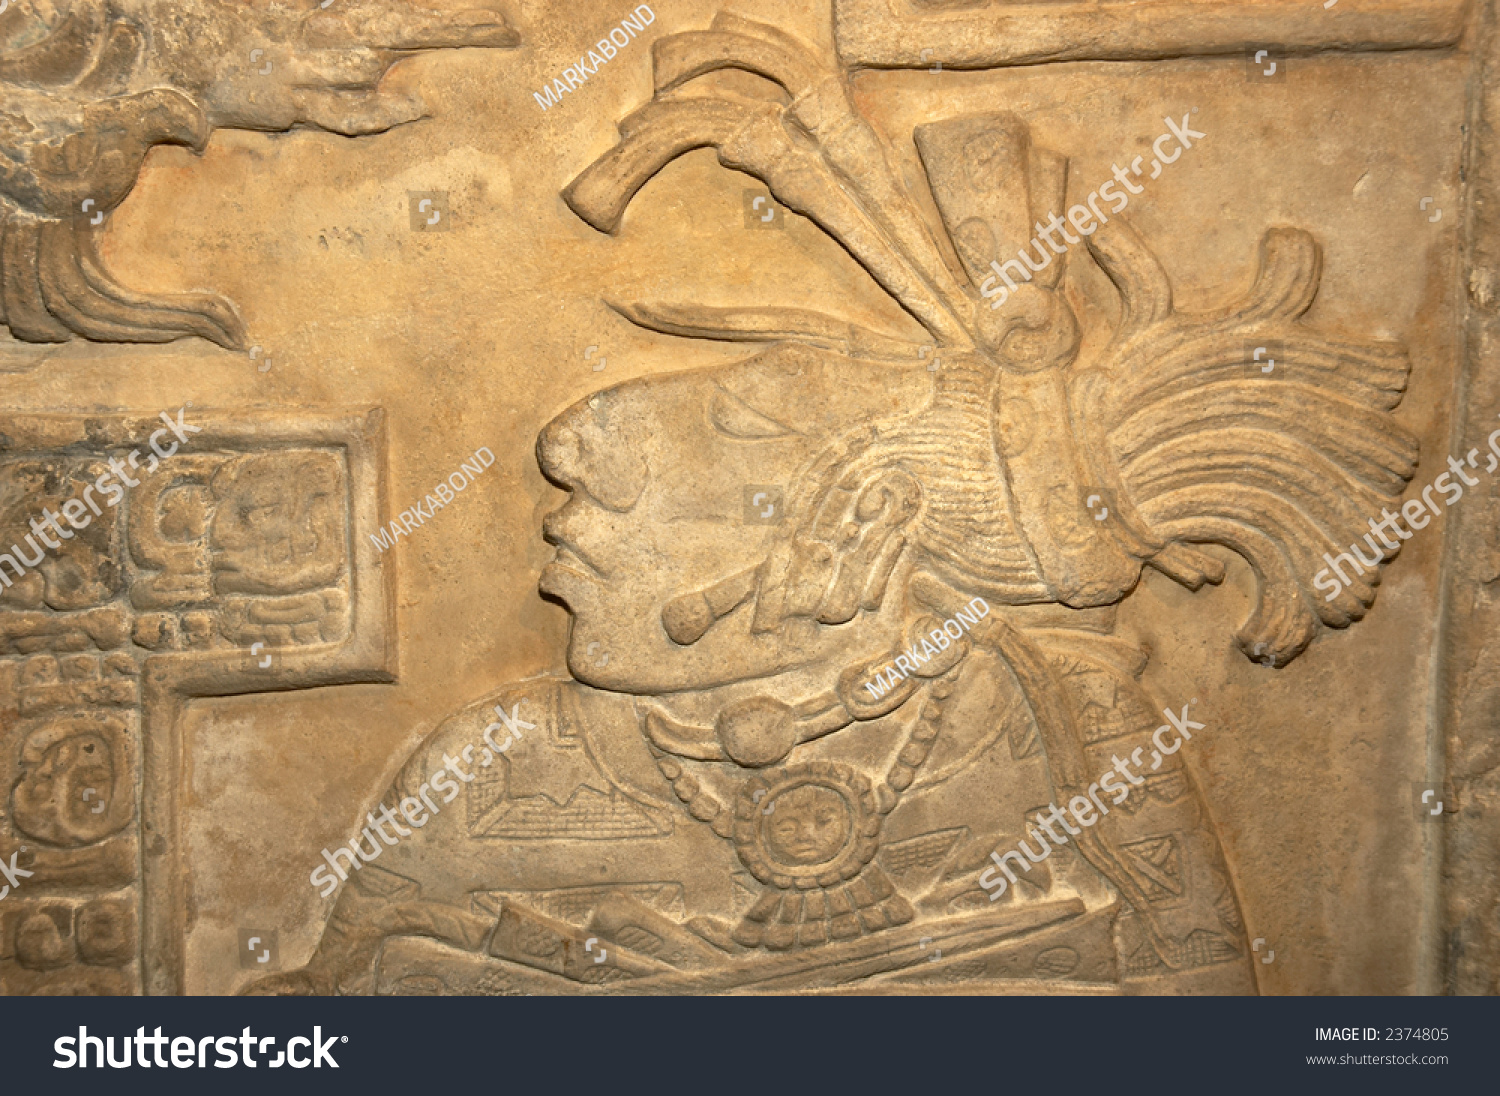 Stone wall carvings in a museum england stock photo